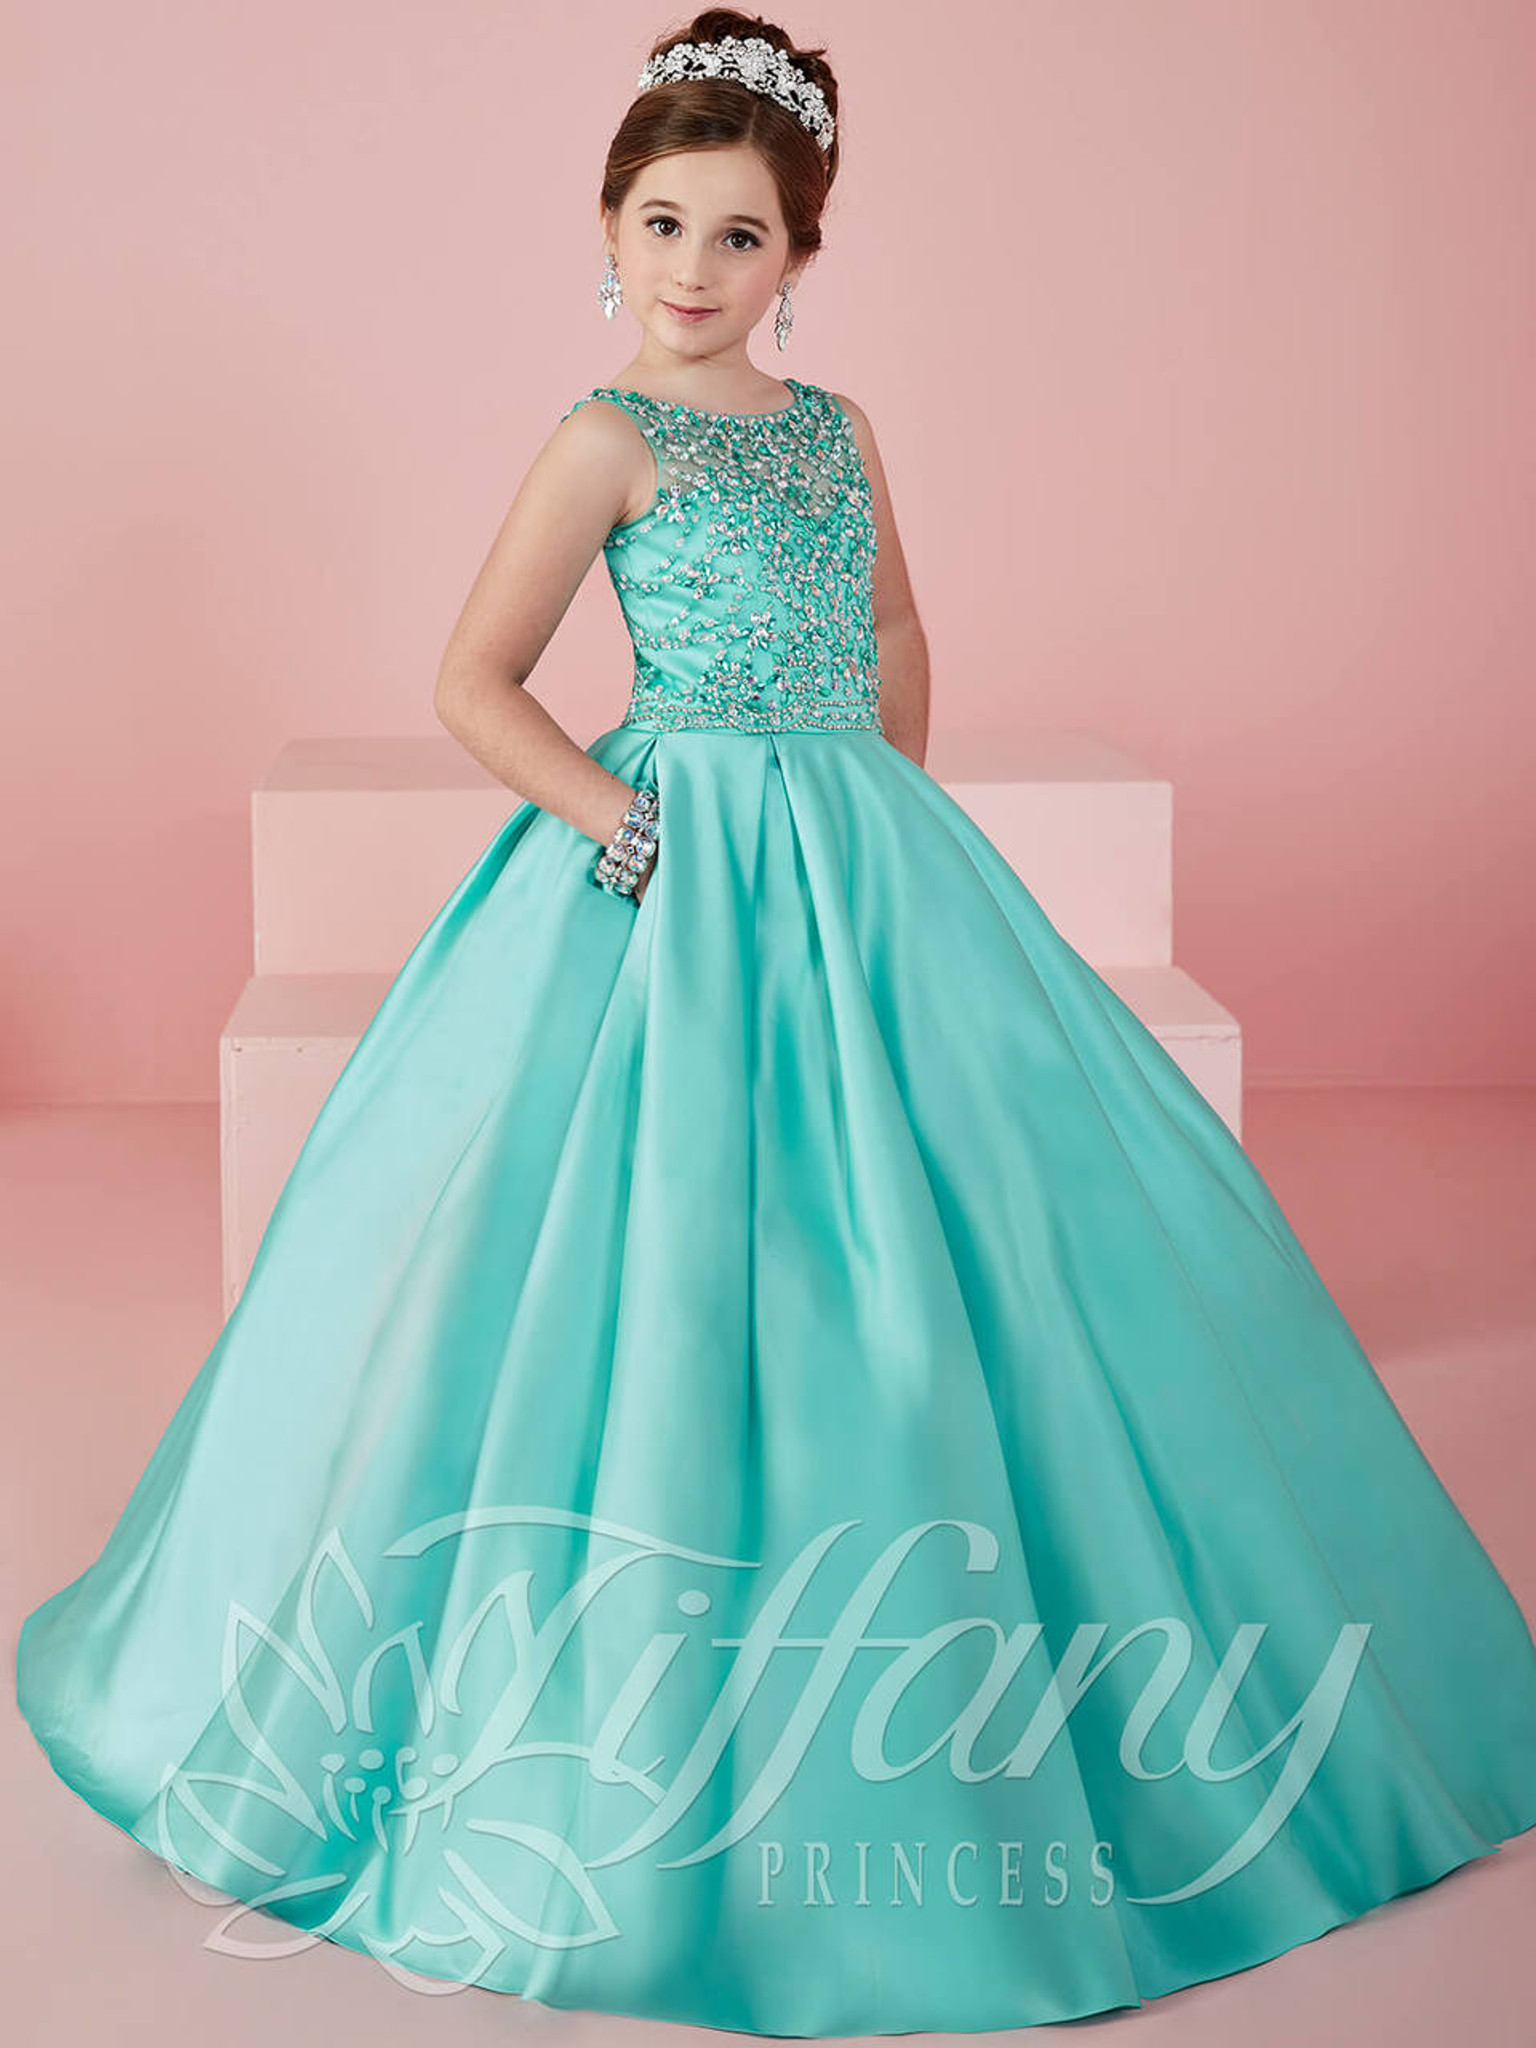 Satin Ball Gown Tiffany Princess Pageant Dress 13472